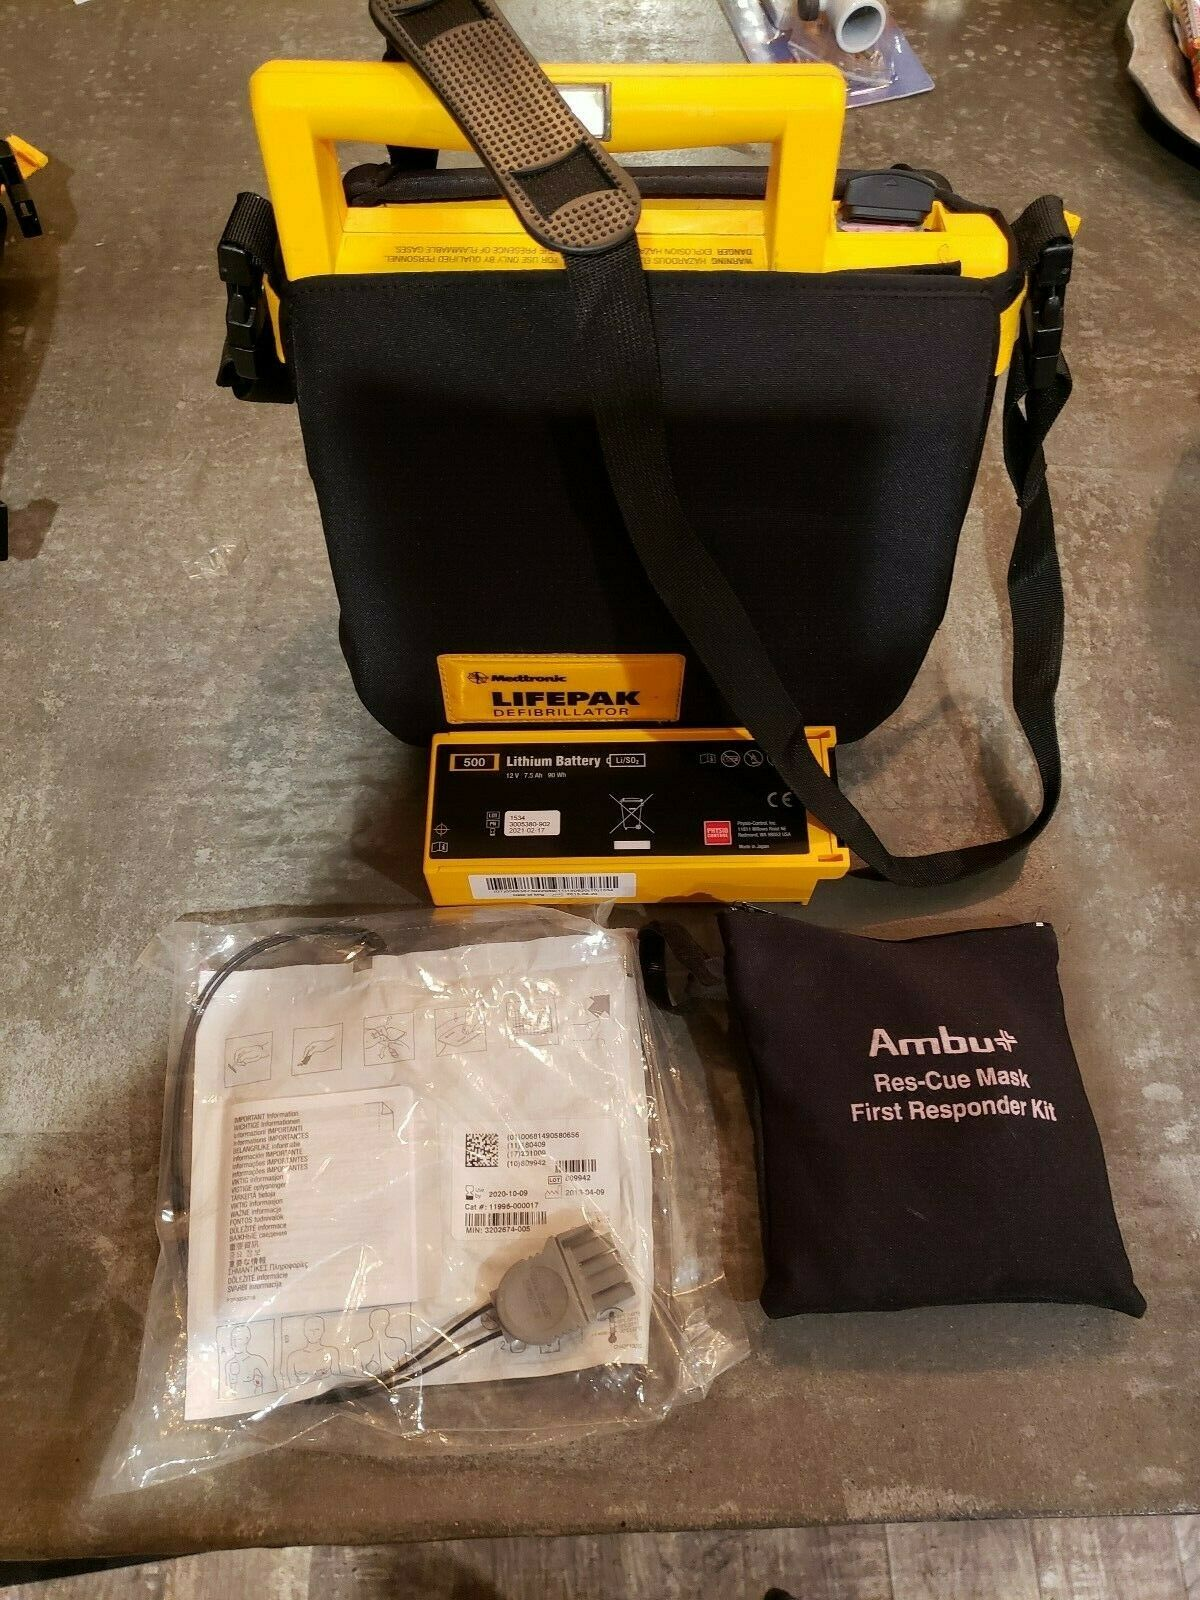 Lifepak 500 defibrillator AED + Case  with pads and brand new battery